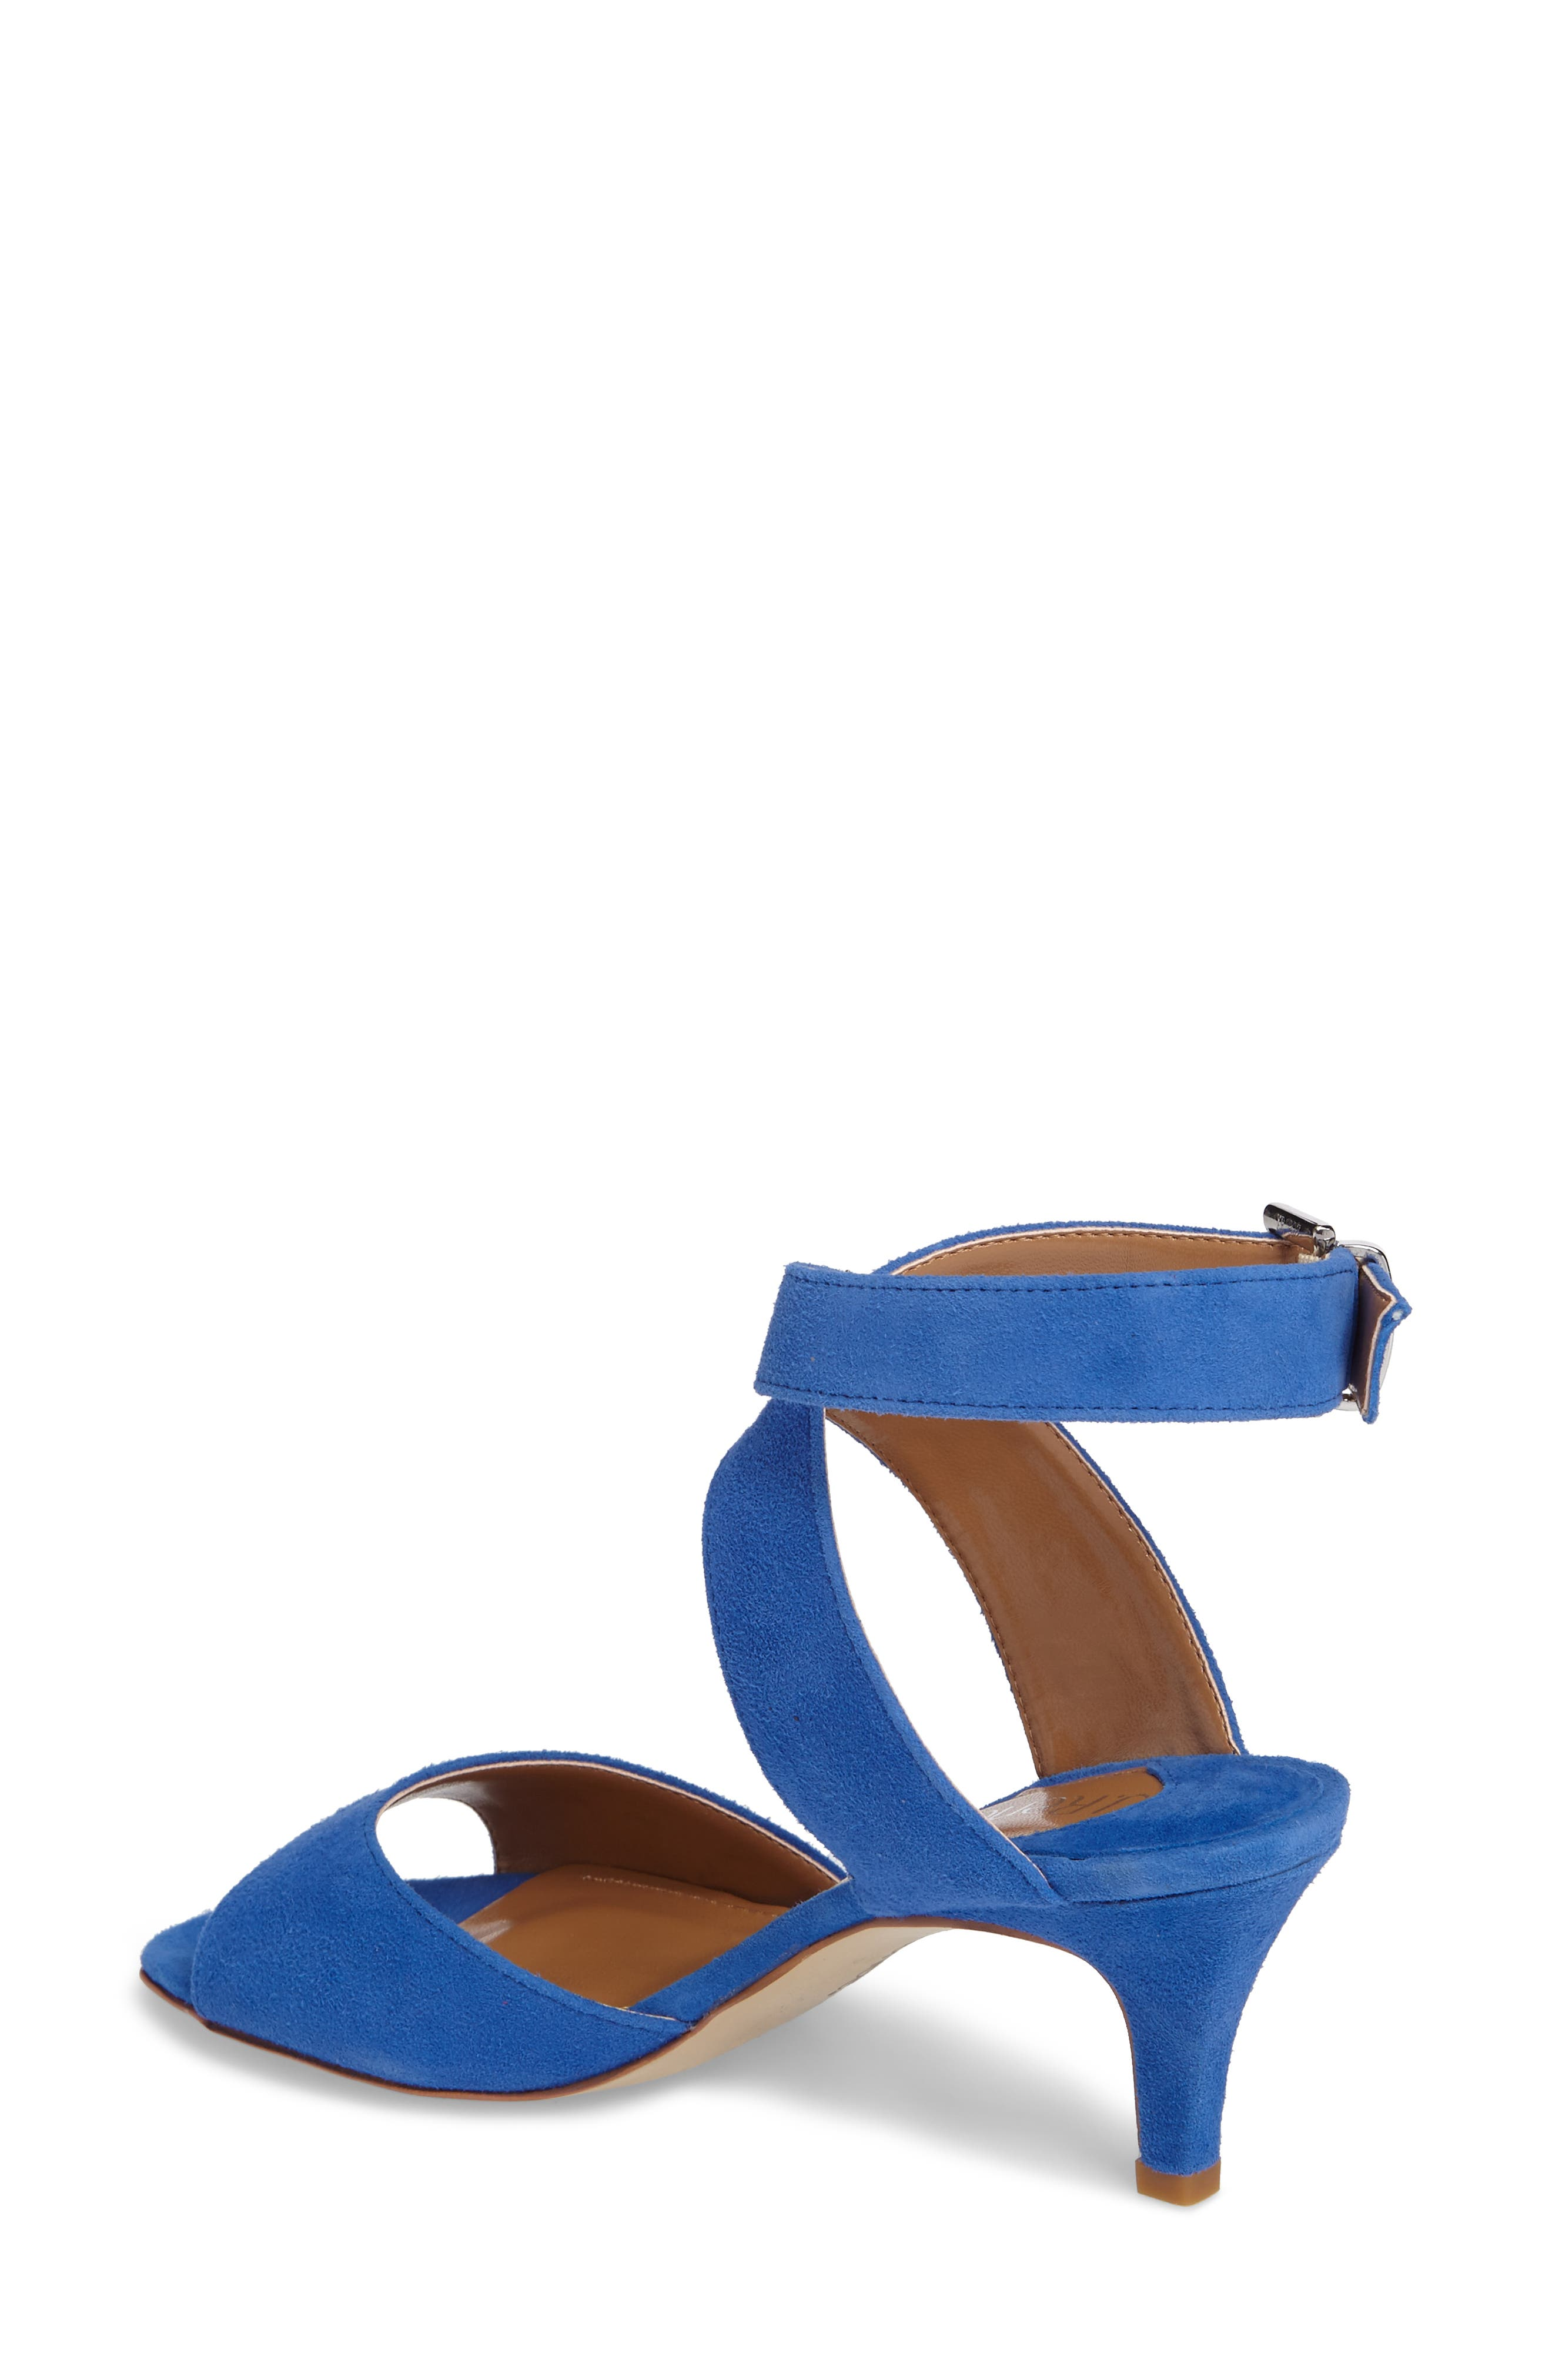 'Soncino' Ankle Strap Sandal,                             Alternate thumbnail 2, color,                             BLUE FABRIC